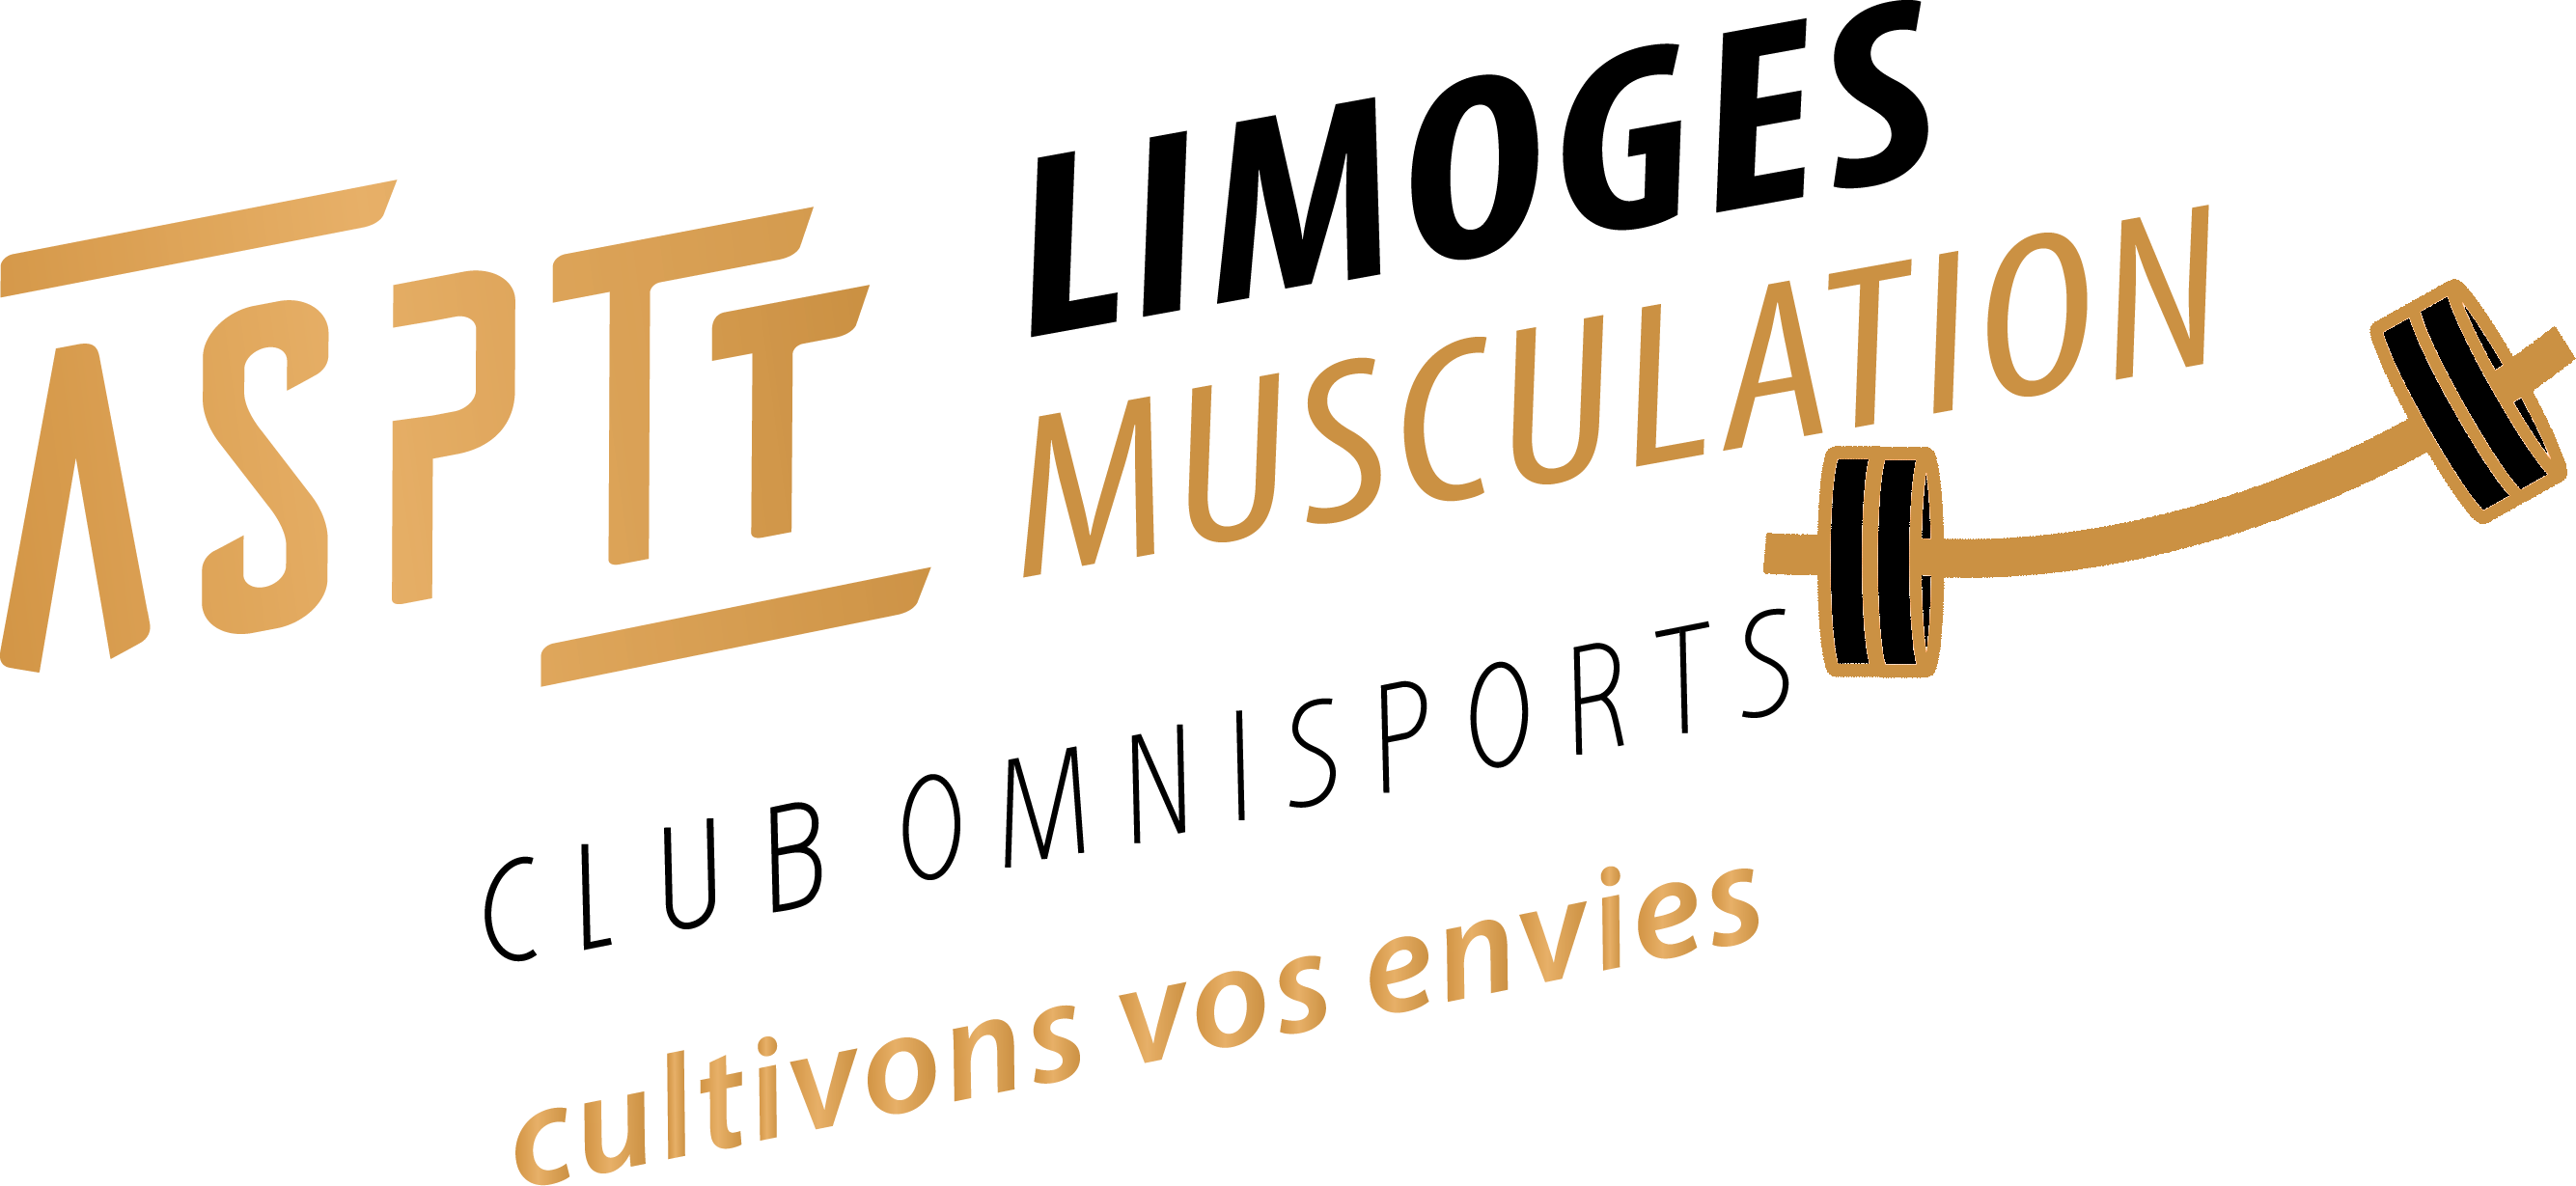 Section Force Athlétique - Musculation